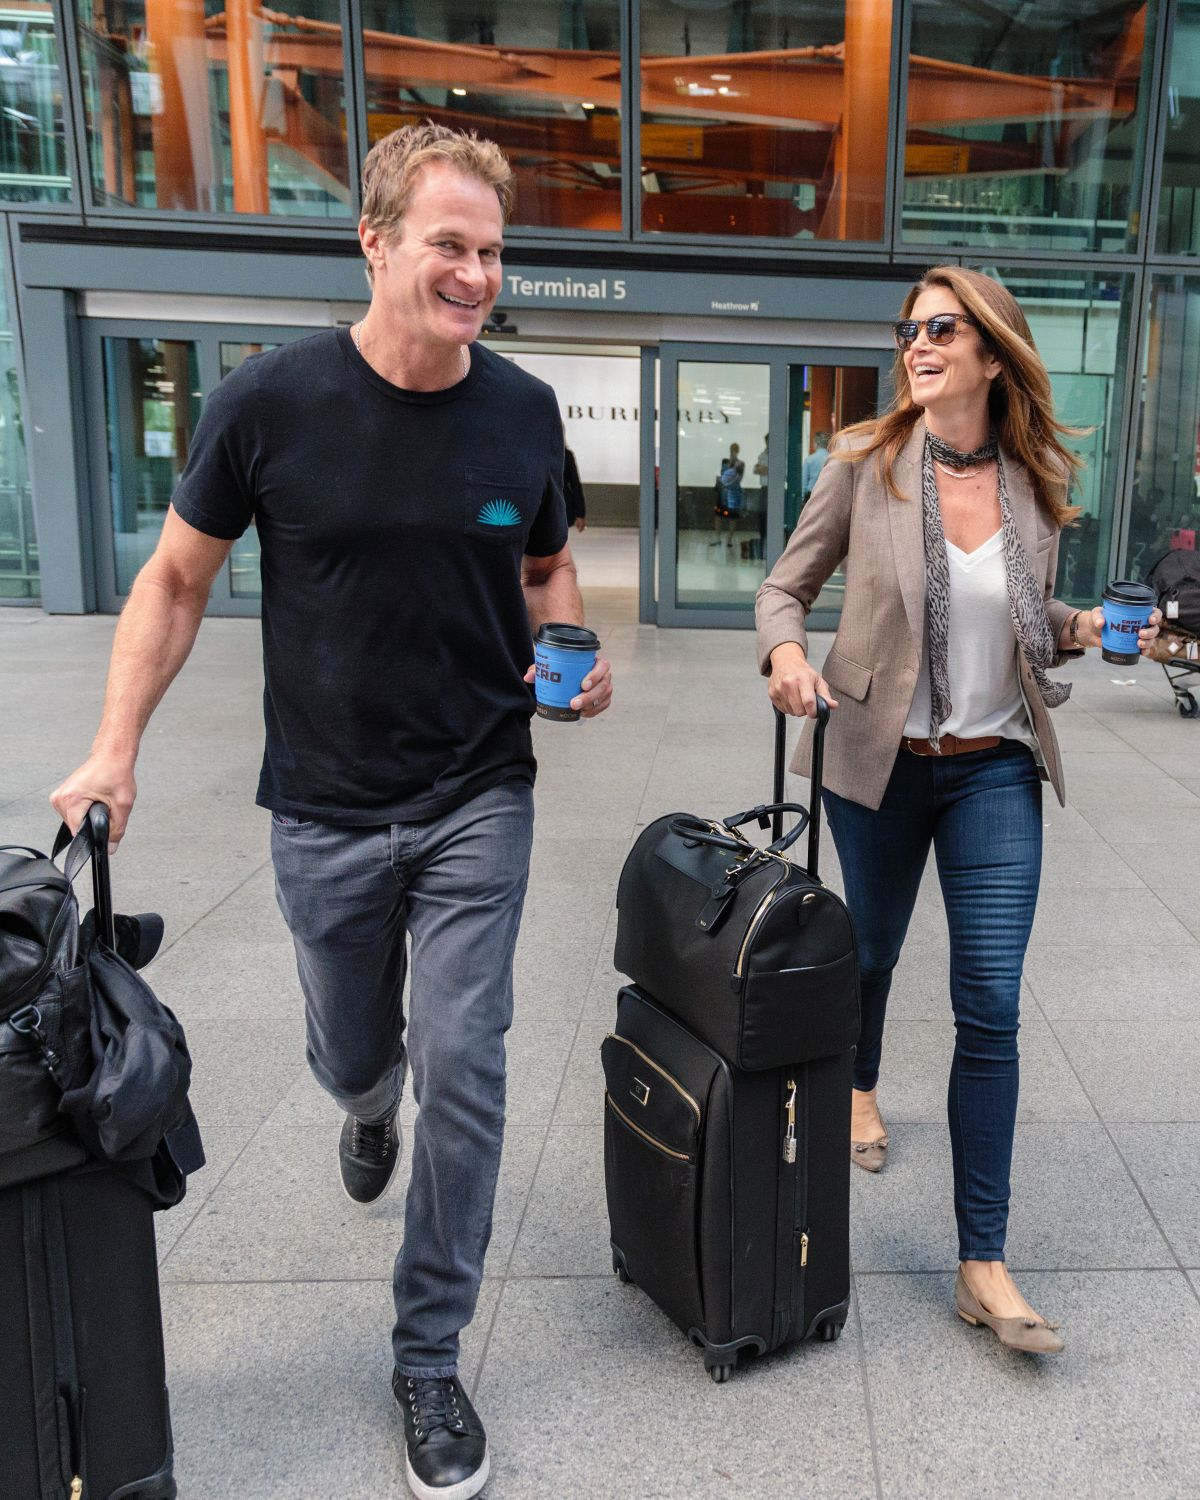 CINDY CRAWFORD at Heathrow Airport in London 06/16/2017